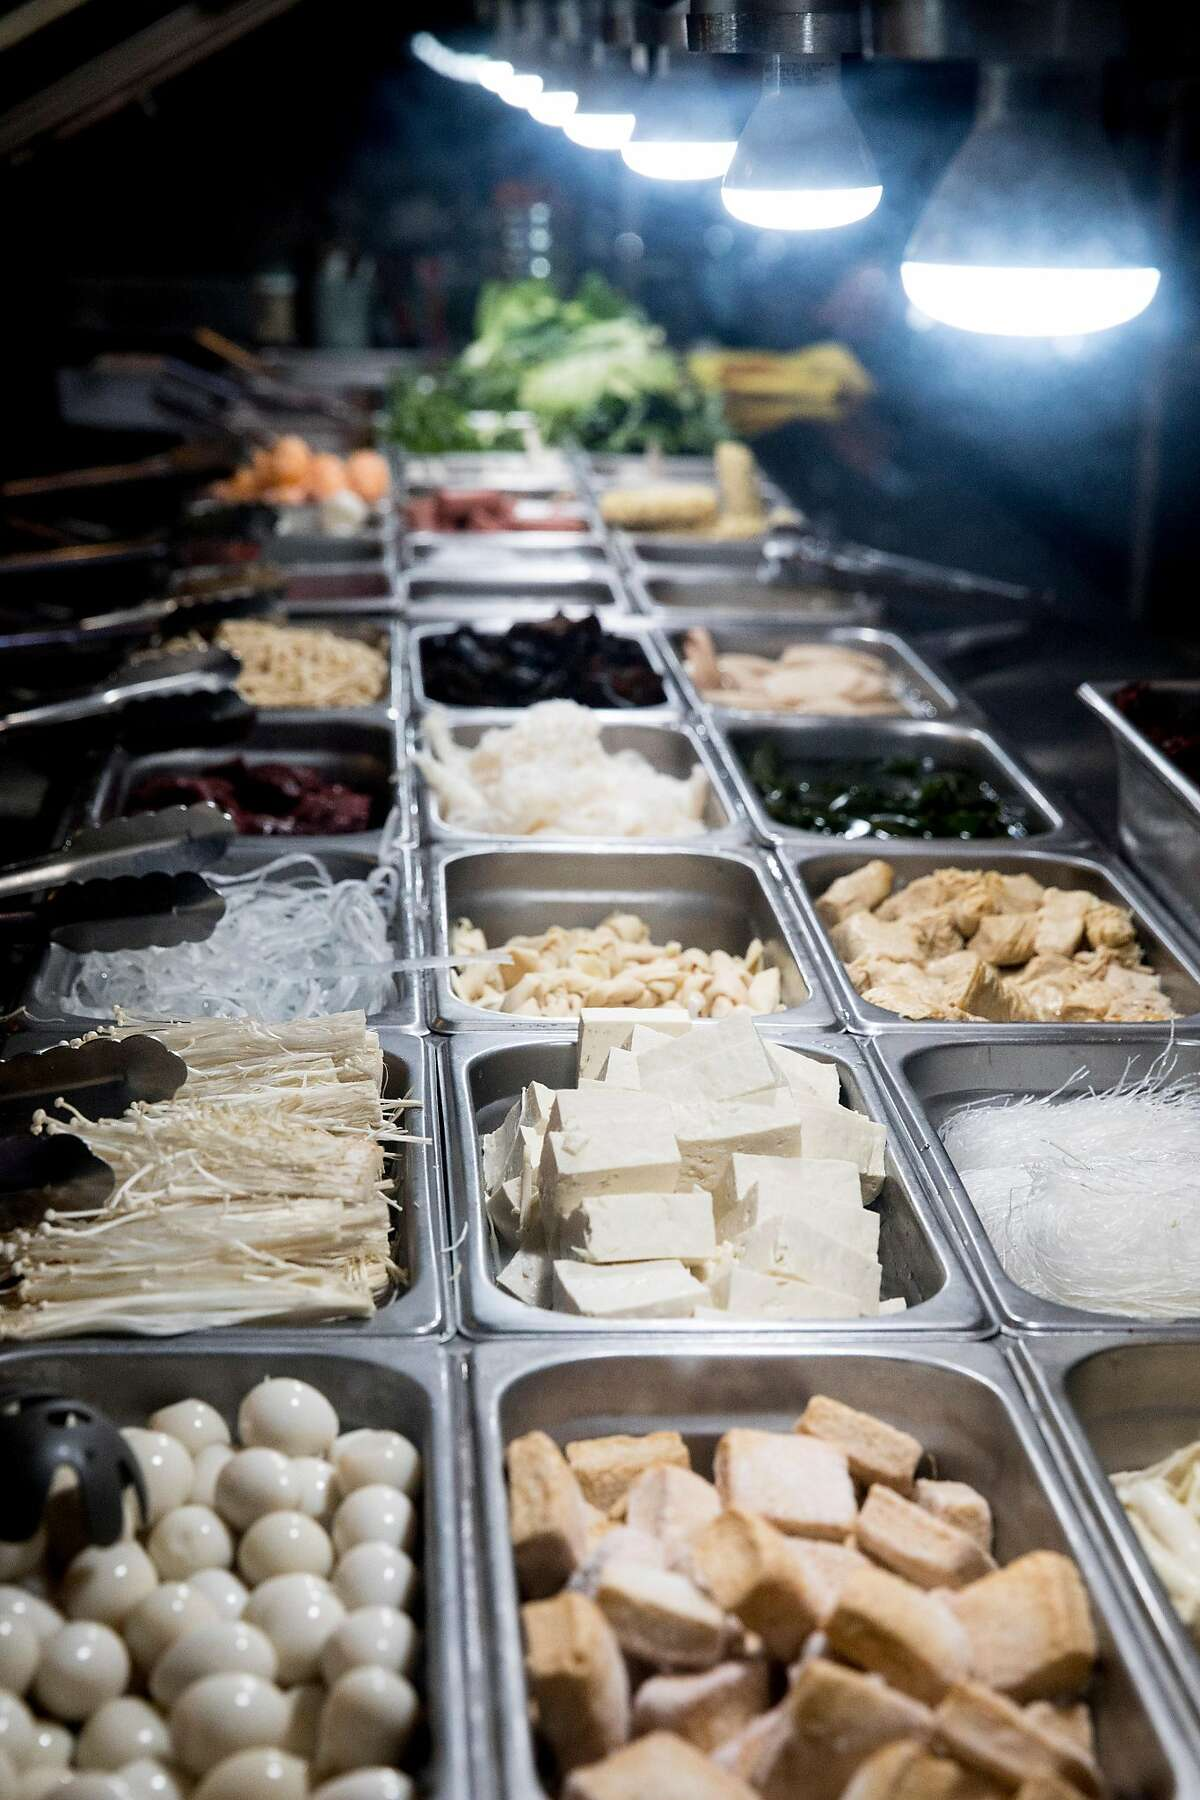 An assortment of vegetables, proteins and other ingredients sit out for customers to build their own meal base at Customize Malatang in Newark, Calif. Friday, Dec. 27, 2019.